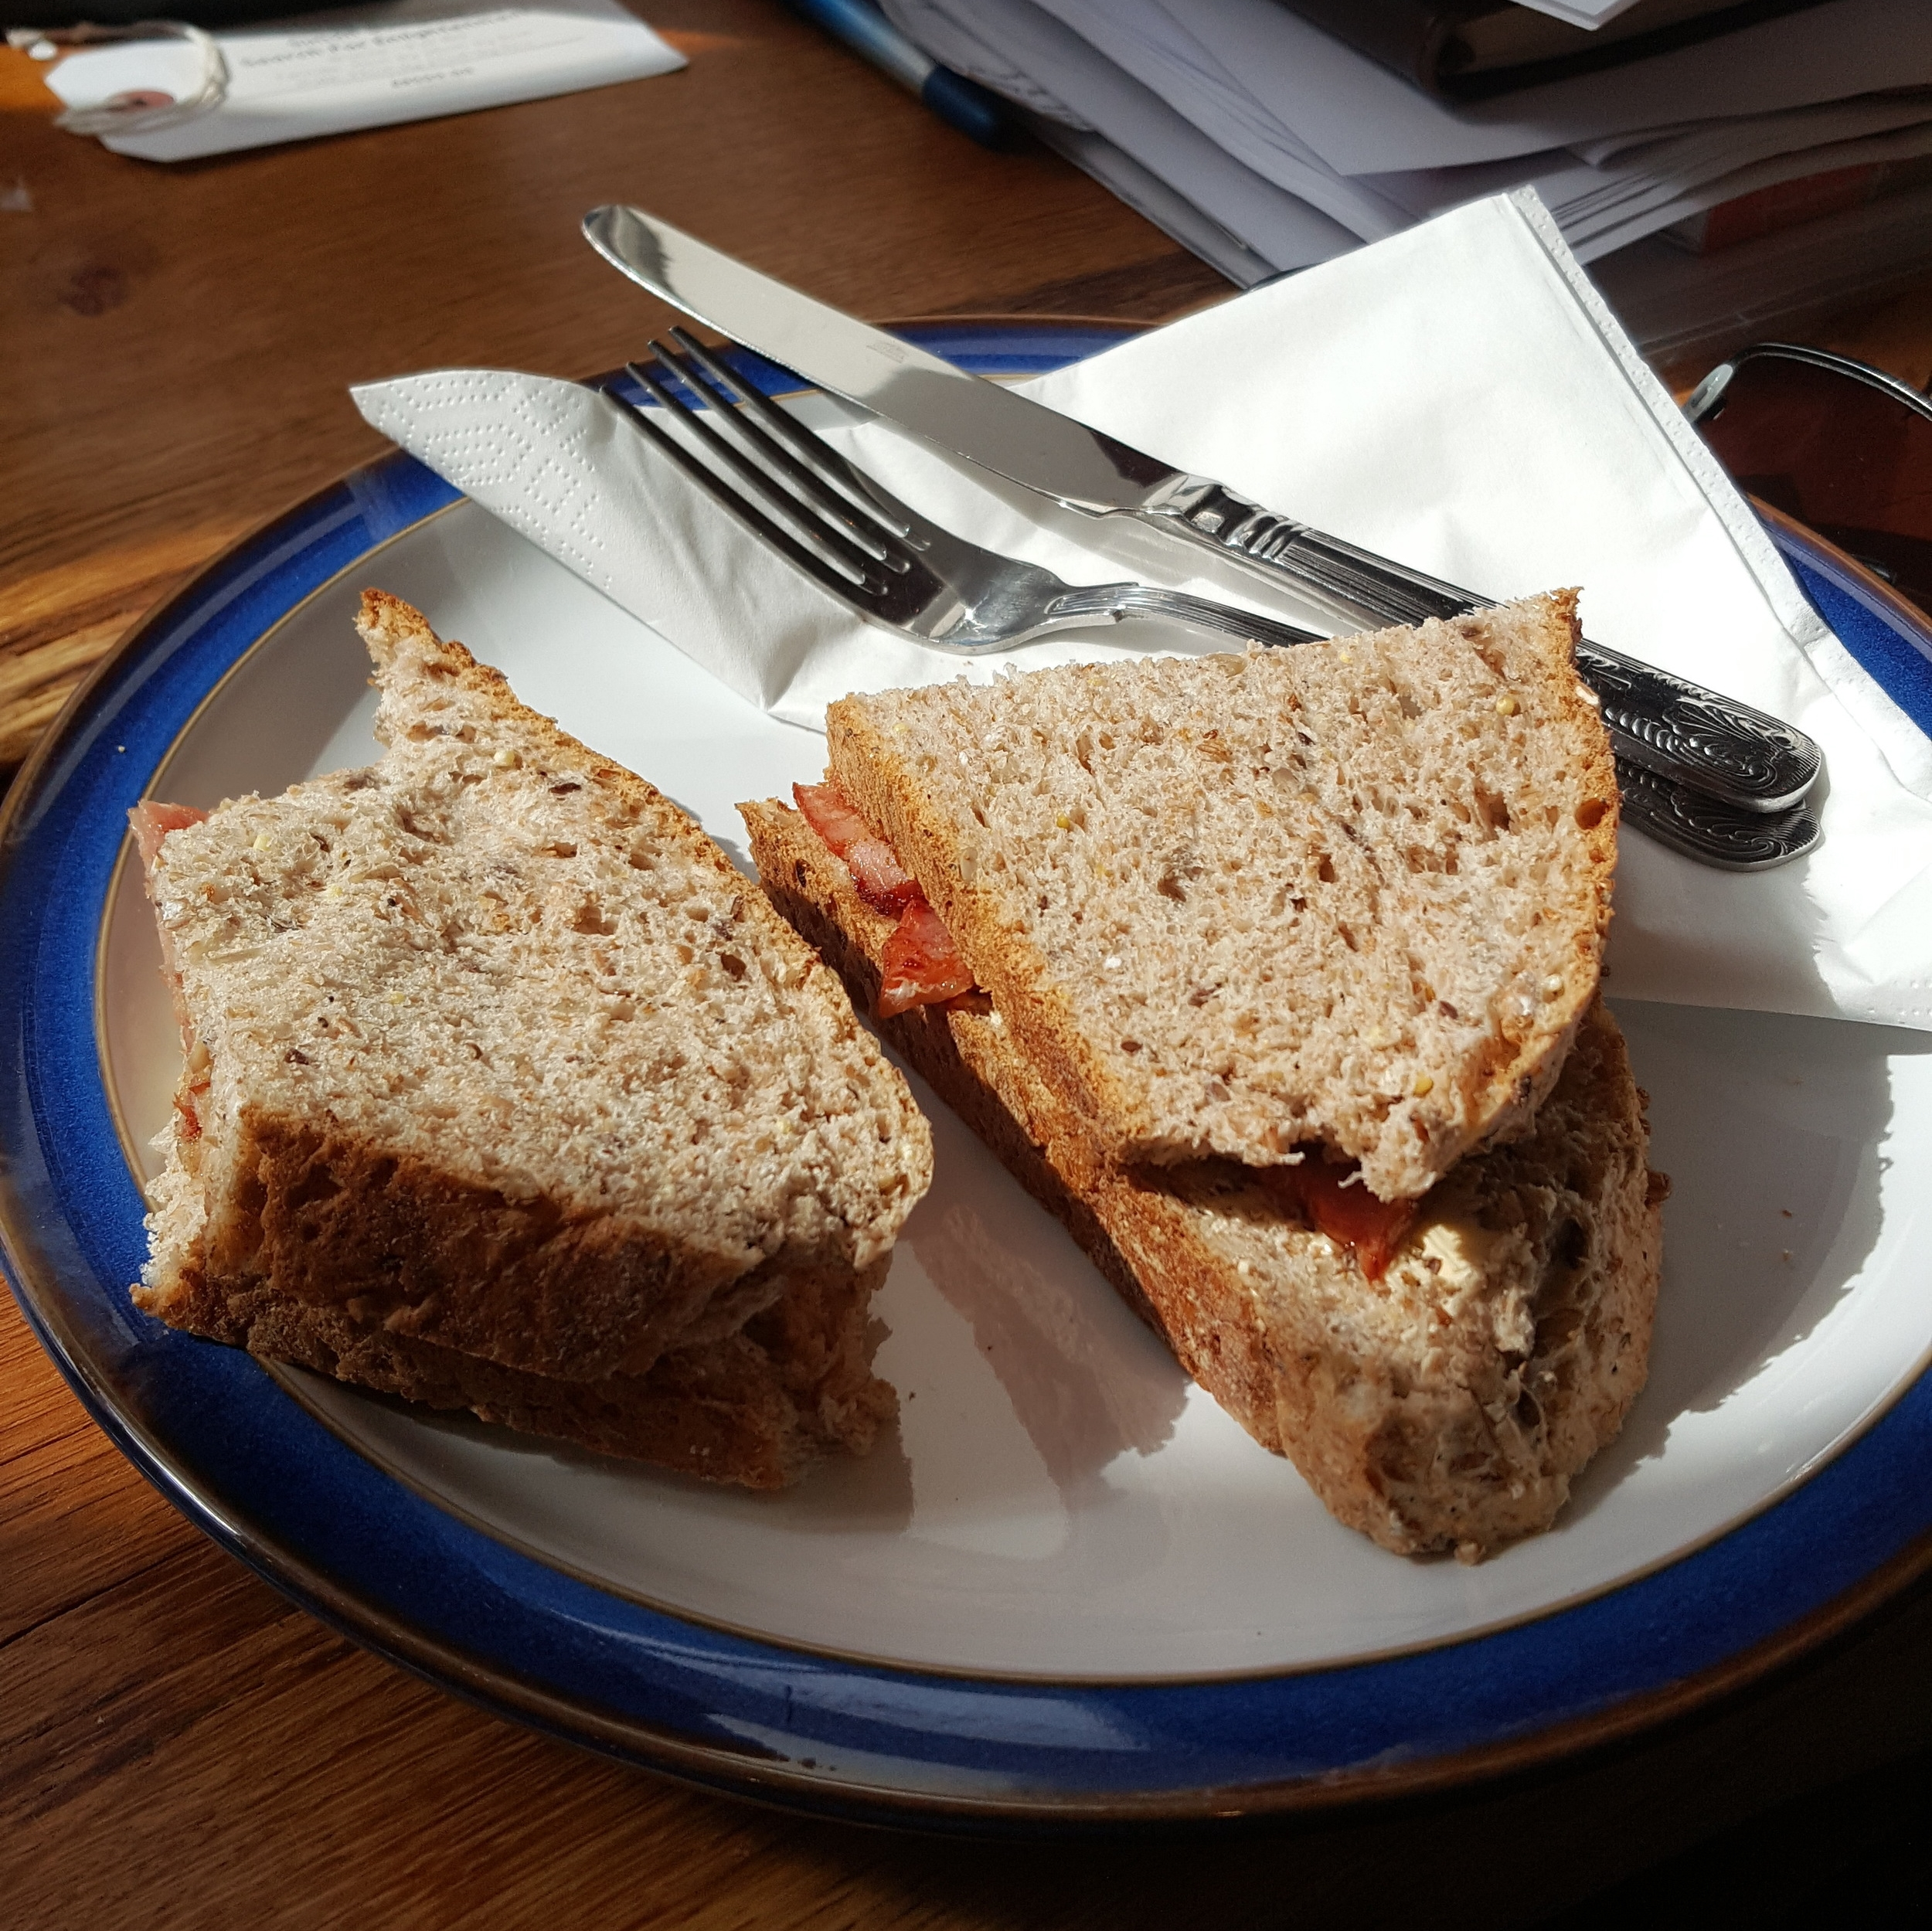 Bacon Sandwich from Fryton Catering Cafe at Nunnignton Studios